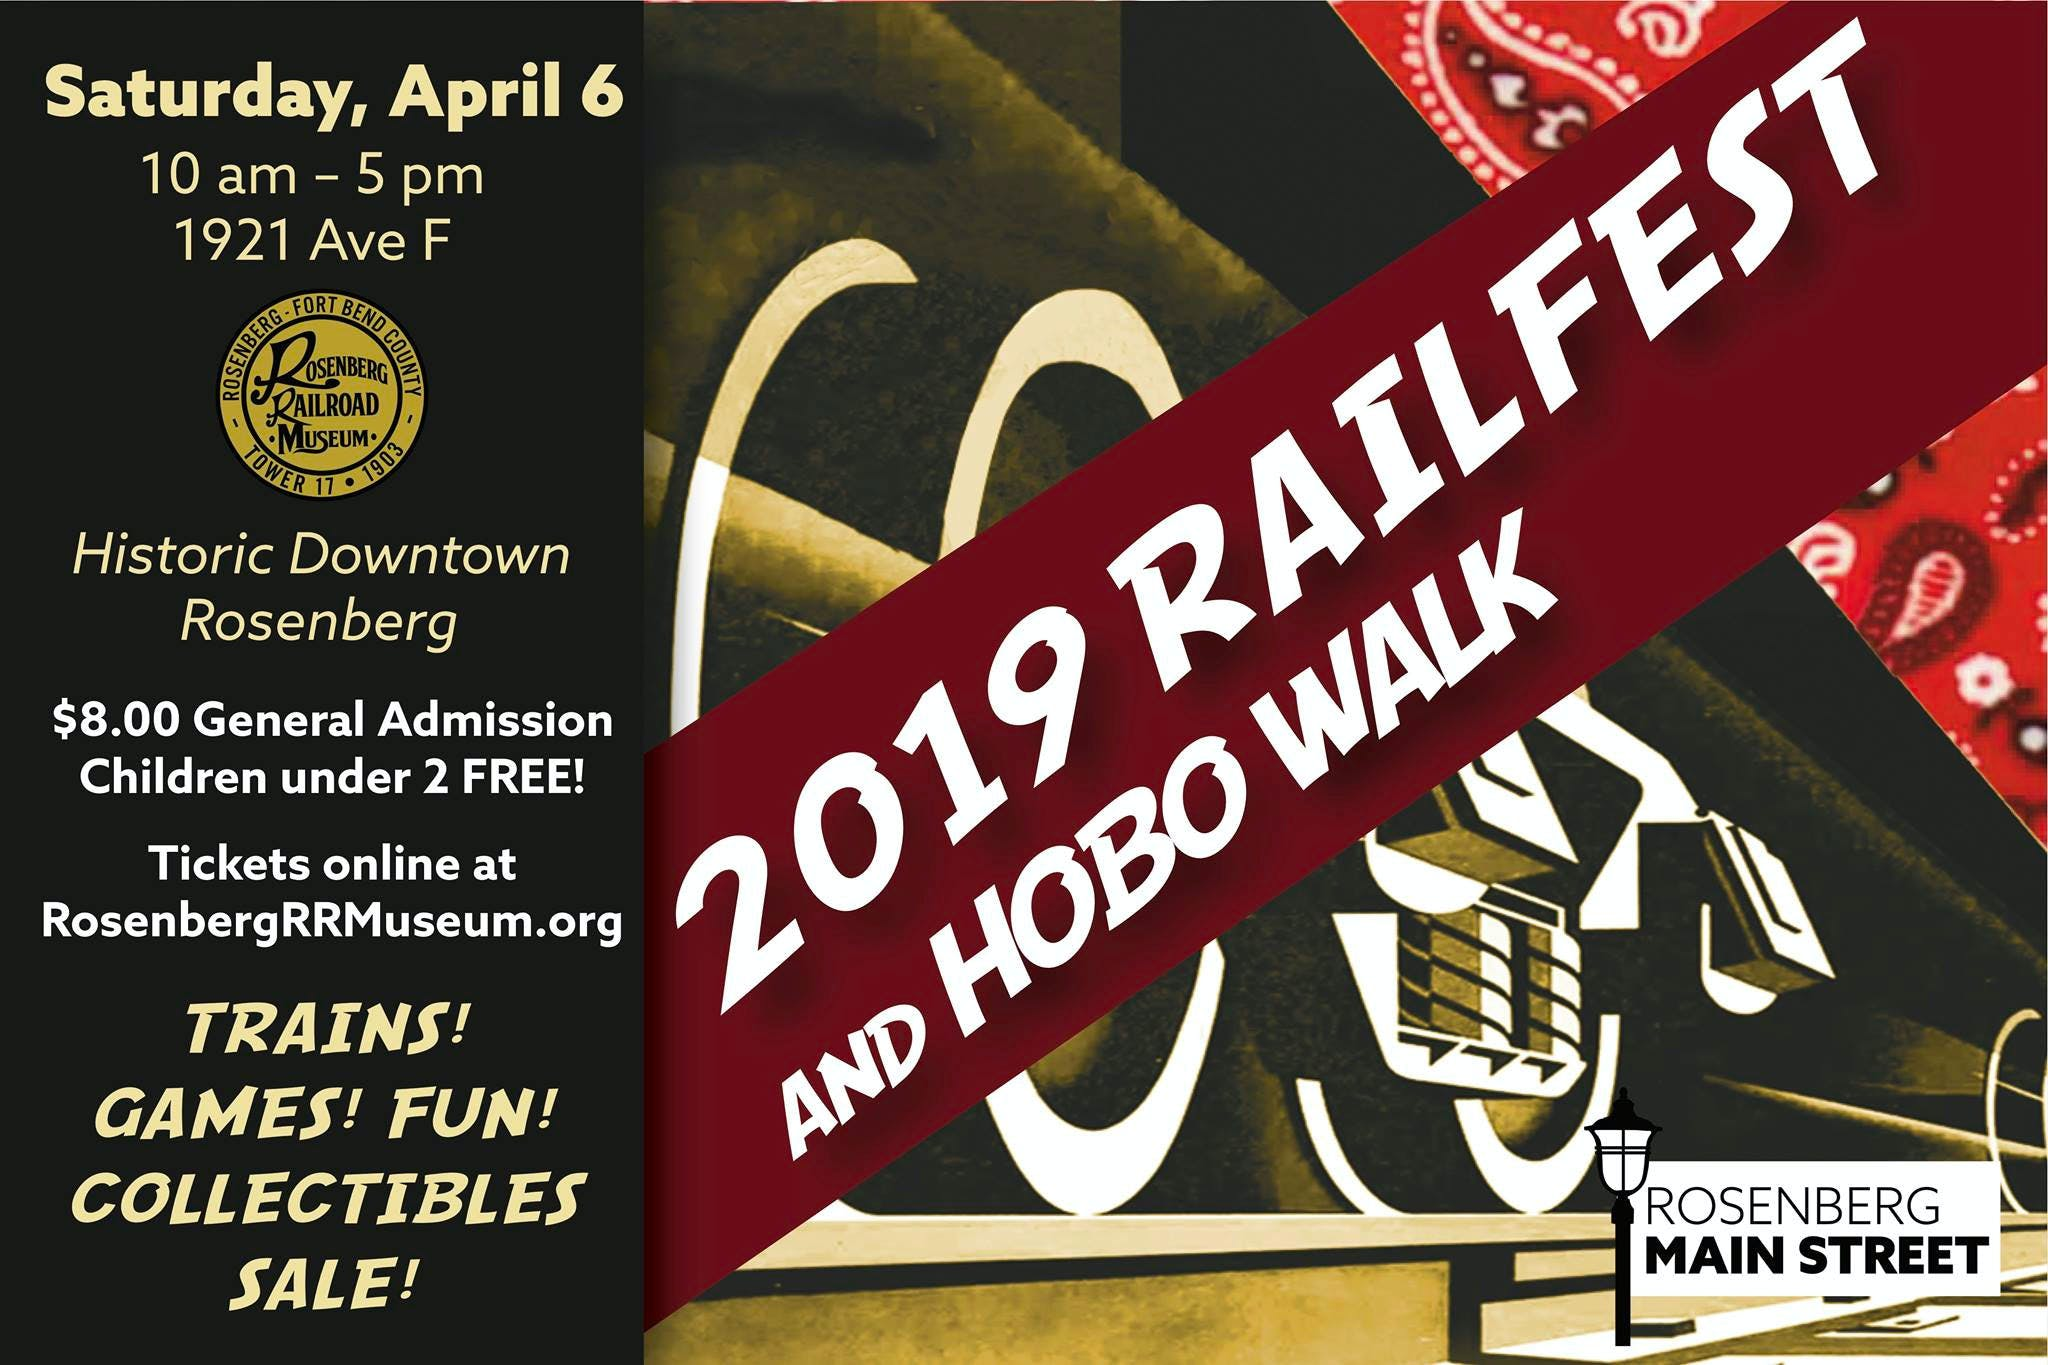 2019-RailFest-and-Hobo-Walk-in-Historic-Downtown-Rosenberg